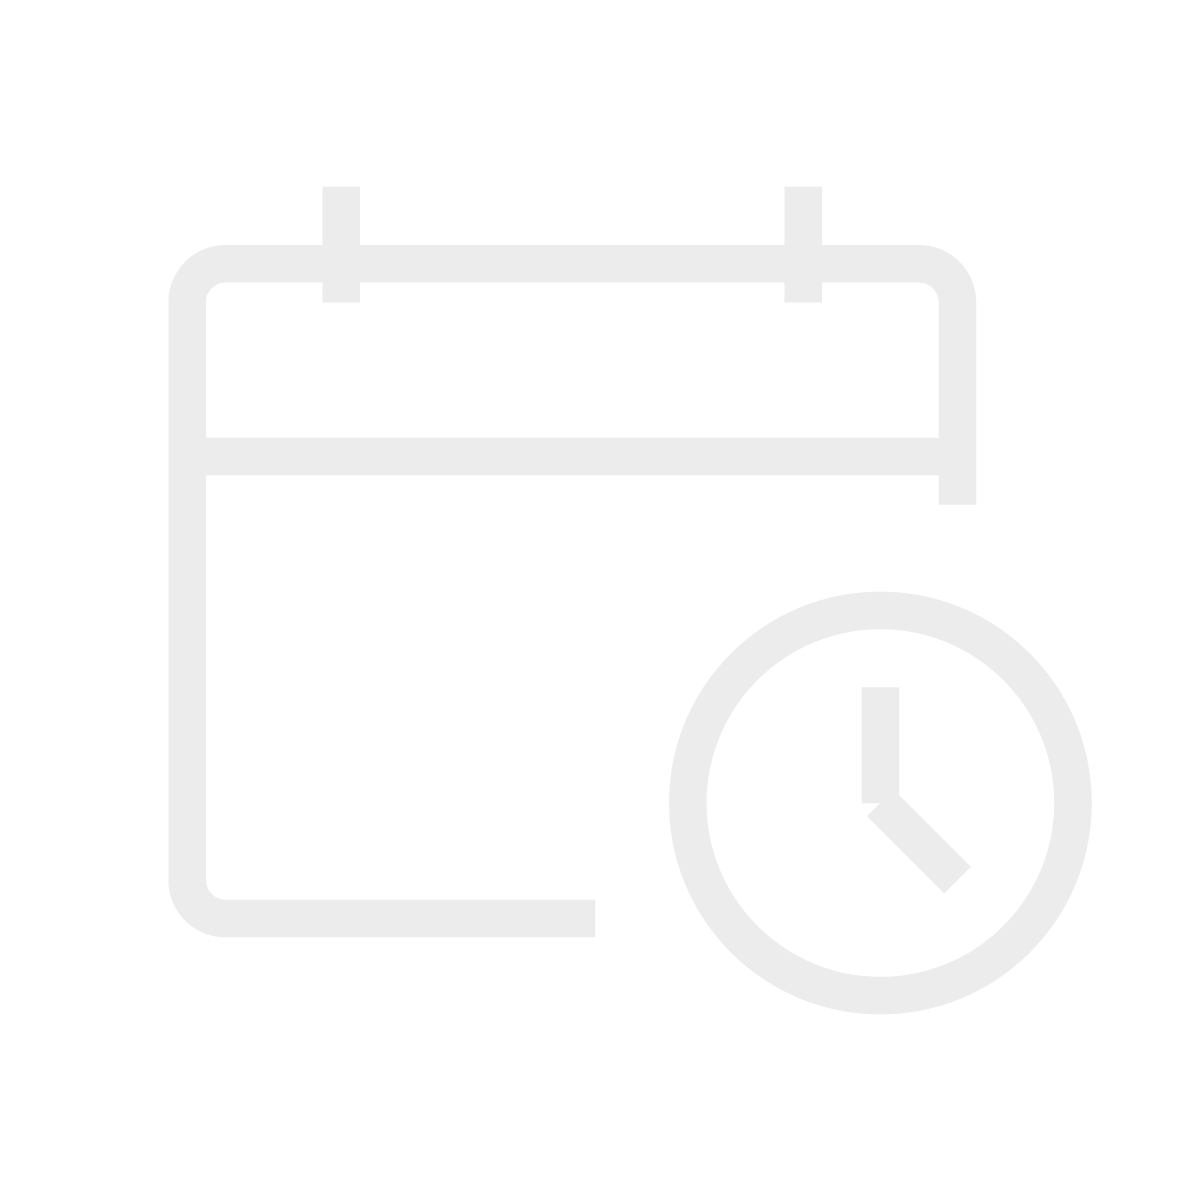 SwissPeaks_Icons Symboles_Grey_DatesTime.png